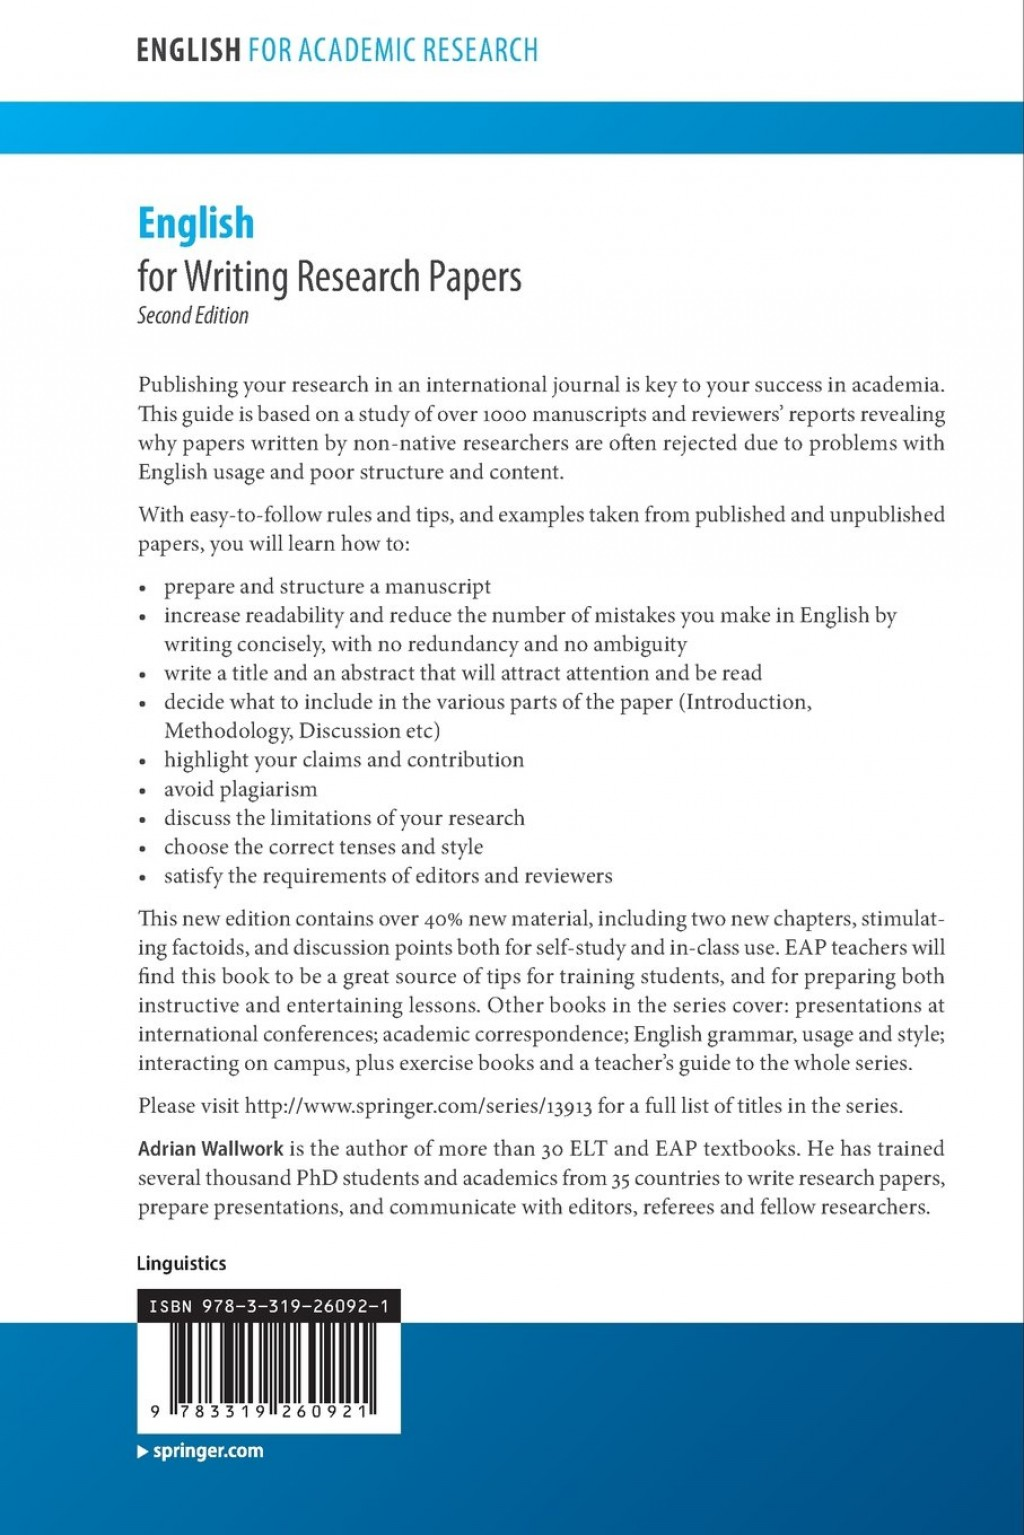 001 71eexuoeuql Research Paper English For Writing Papers Awesome Springer Pdf Useful Phrases - Large